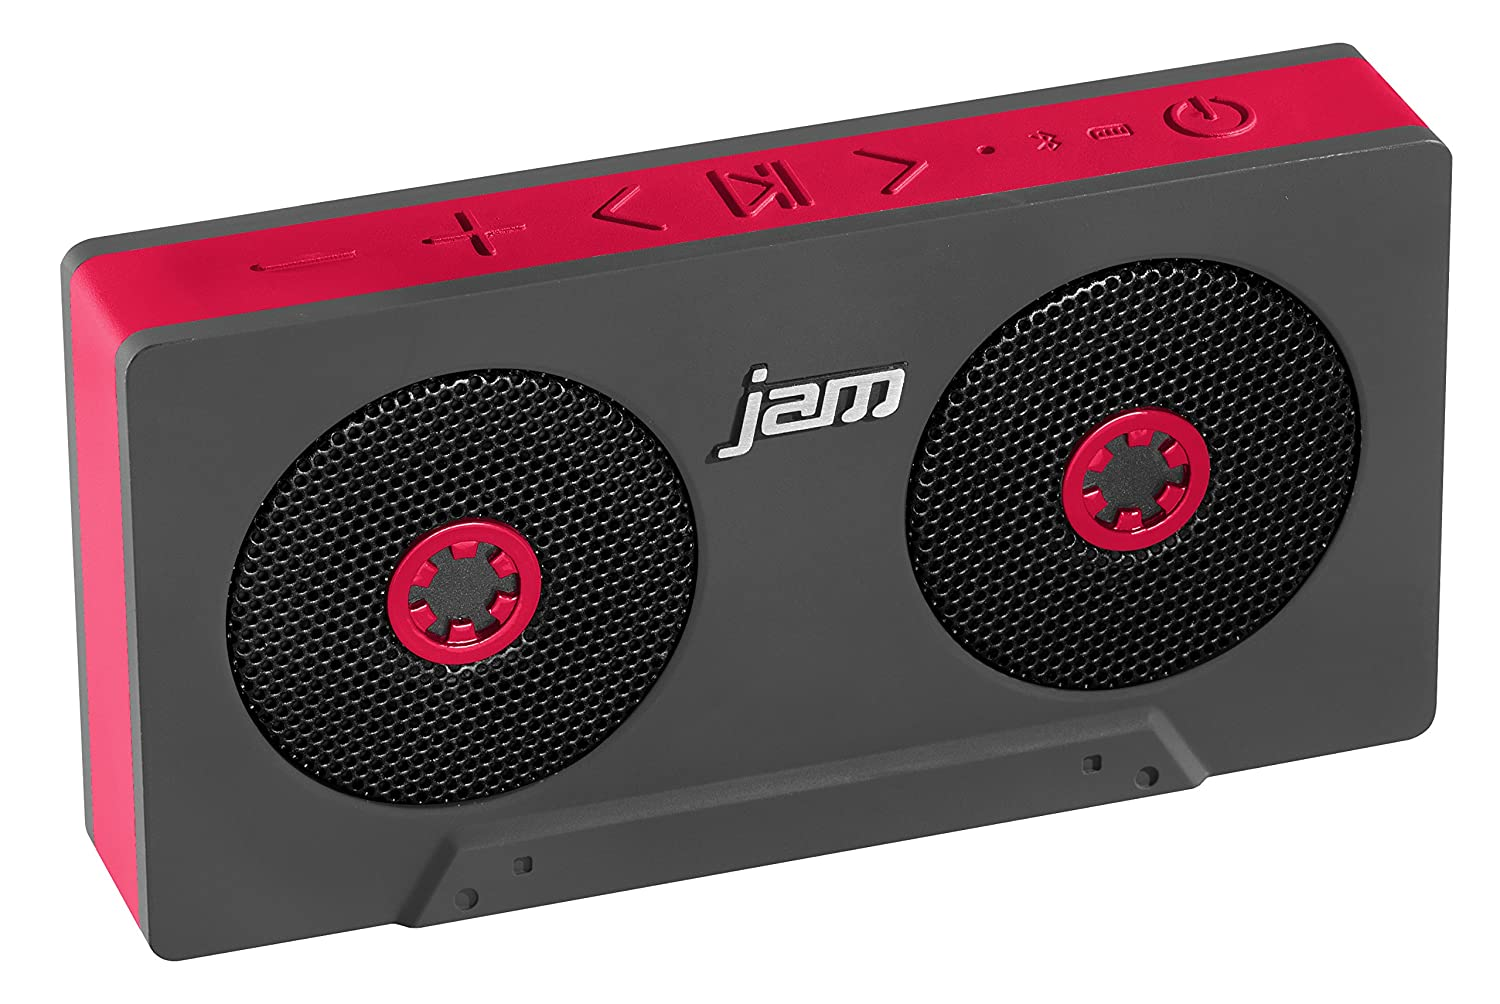 jbl bluetooth speakers walmart. amazon.com: jam rewind wireless speaker (red) hx-p540rd: home audio \u0026 theater jbl bluetooth speakers walmart c